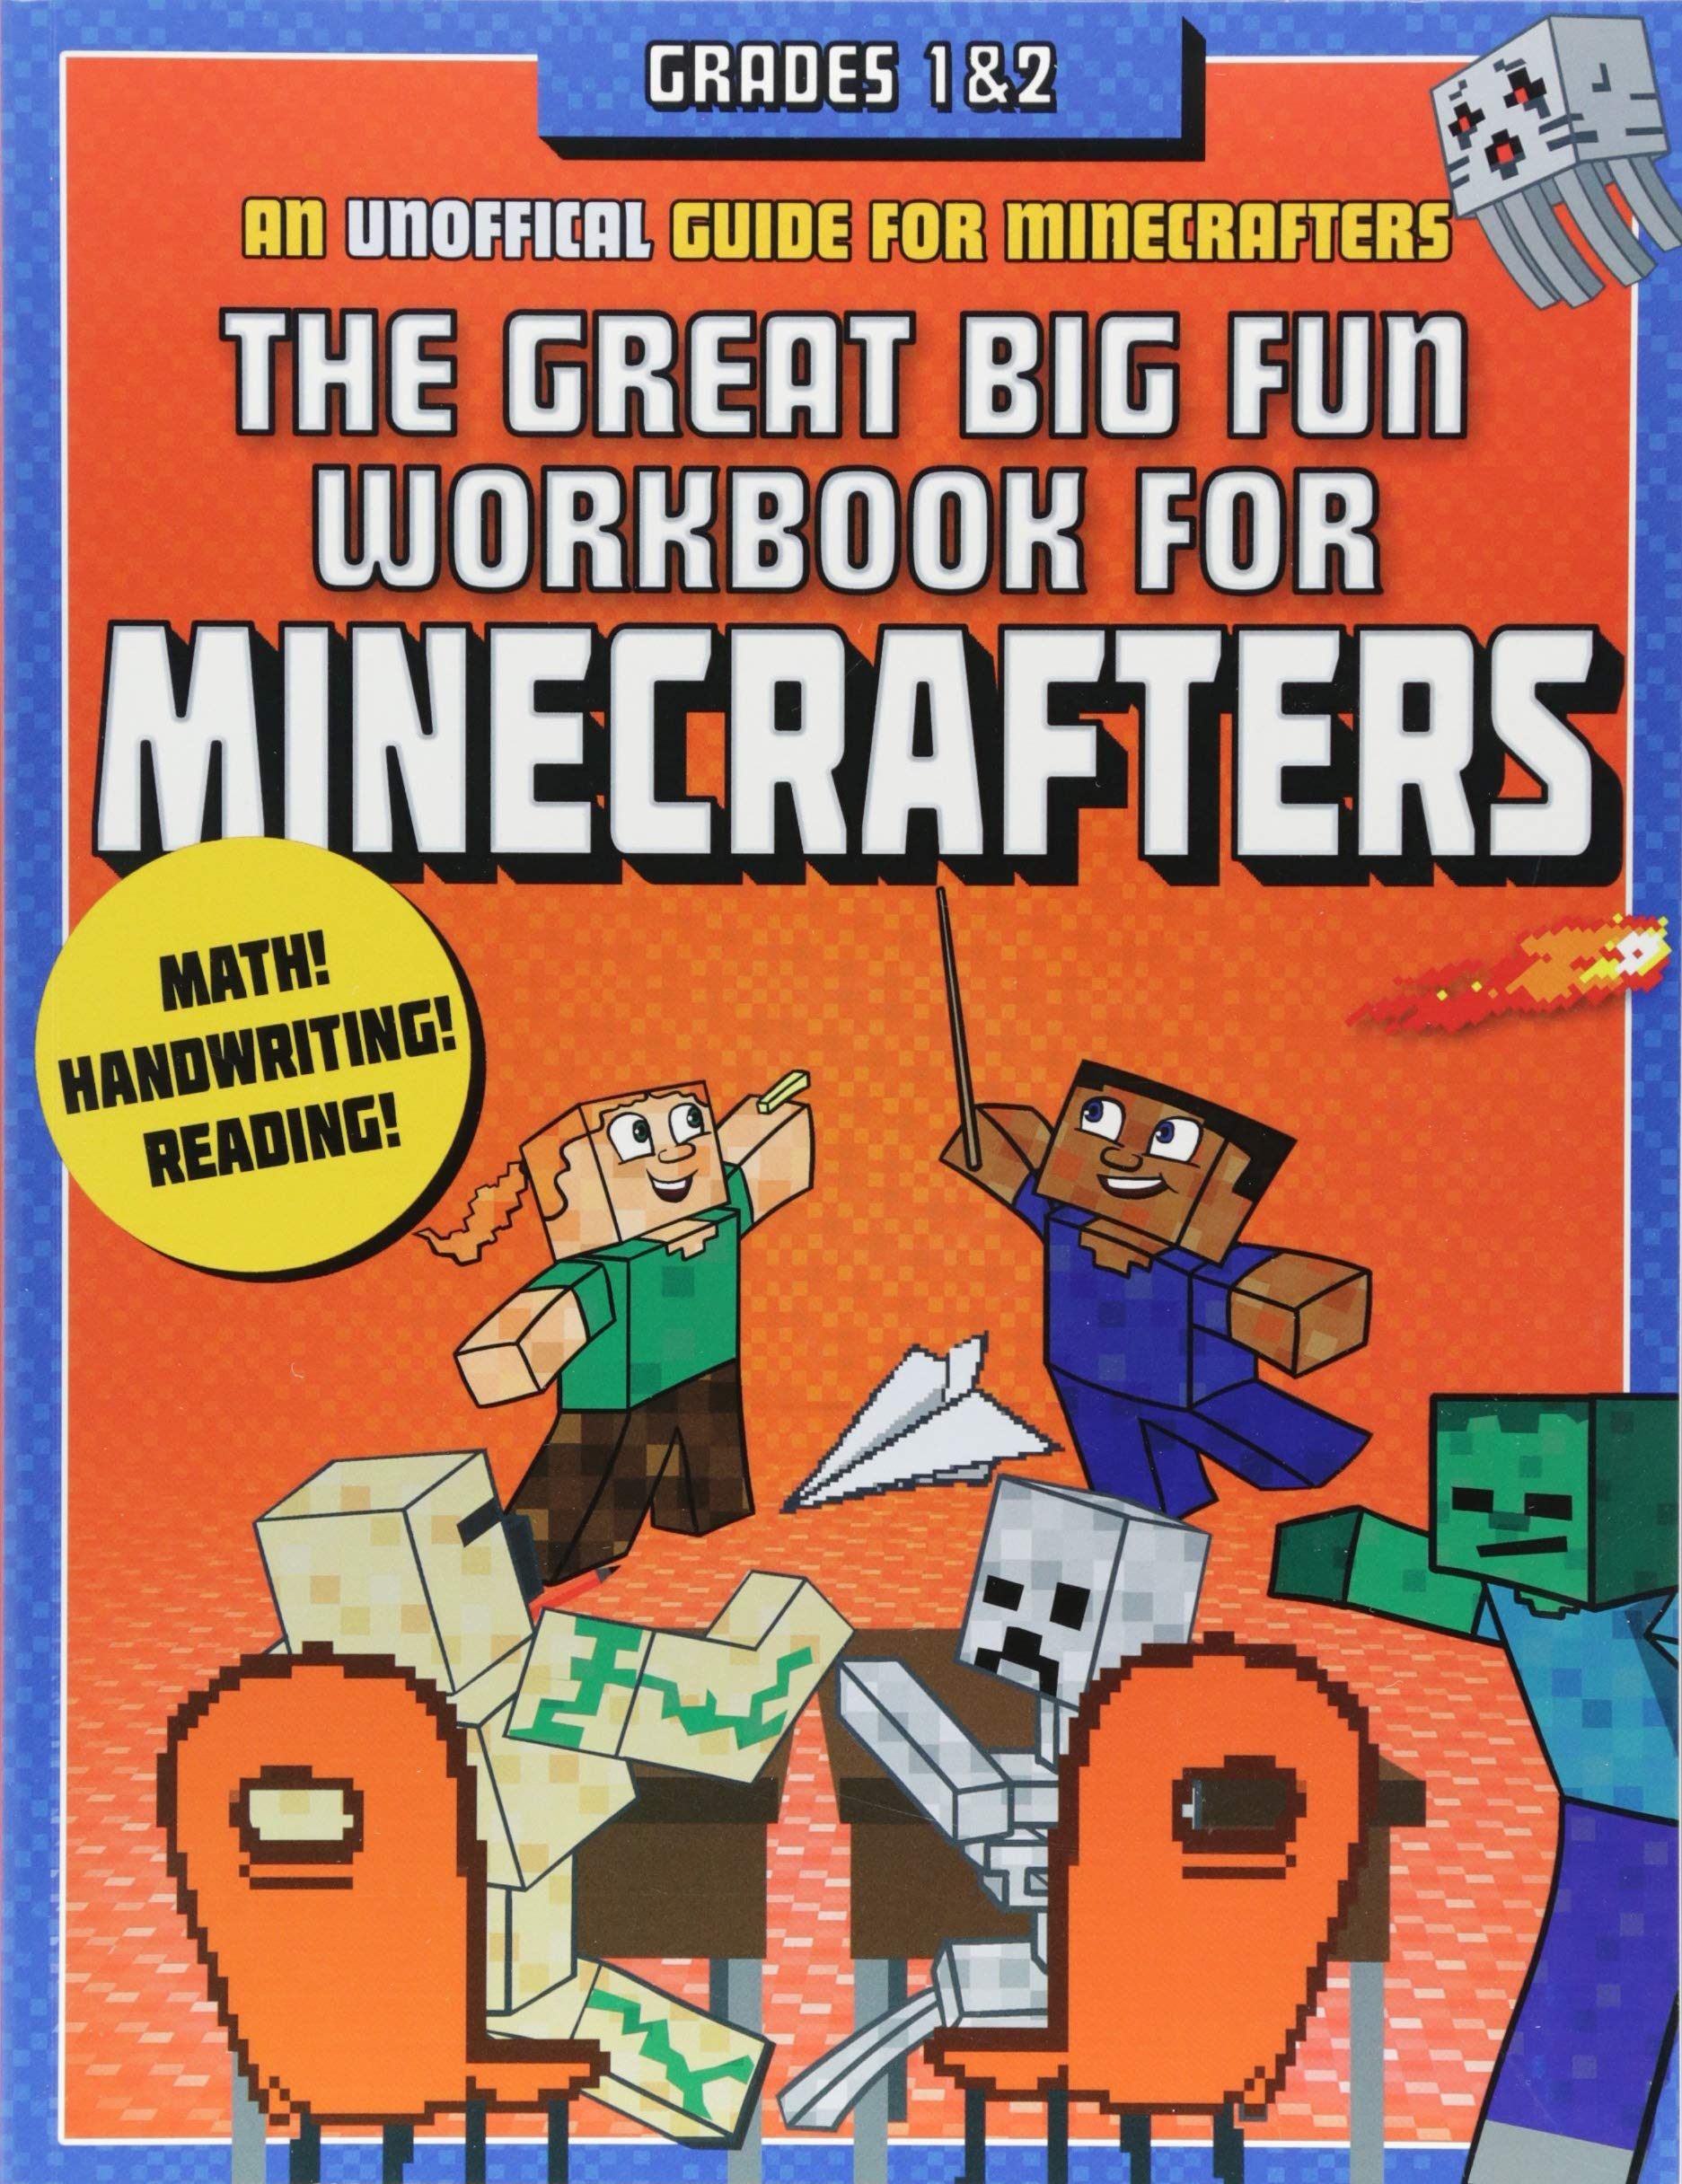 The Great Big Fun Workbook for Minecrafters: Grades 1 & 2: An Unofficial Workbook by Sky Pony Press